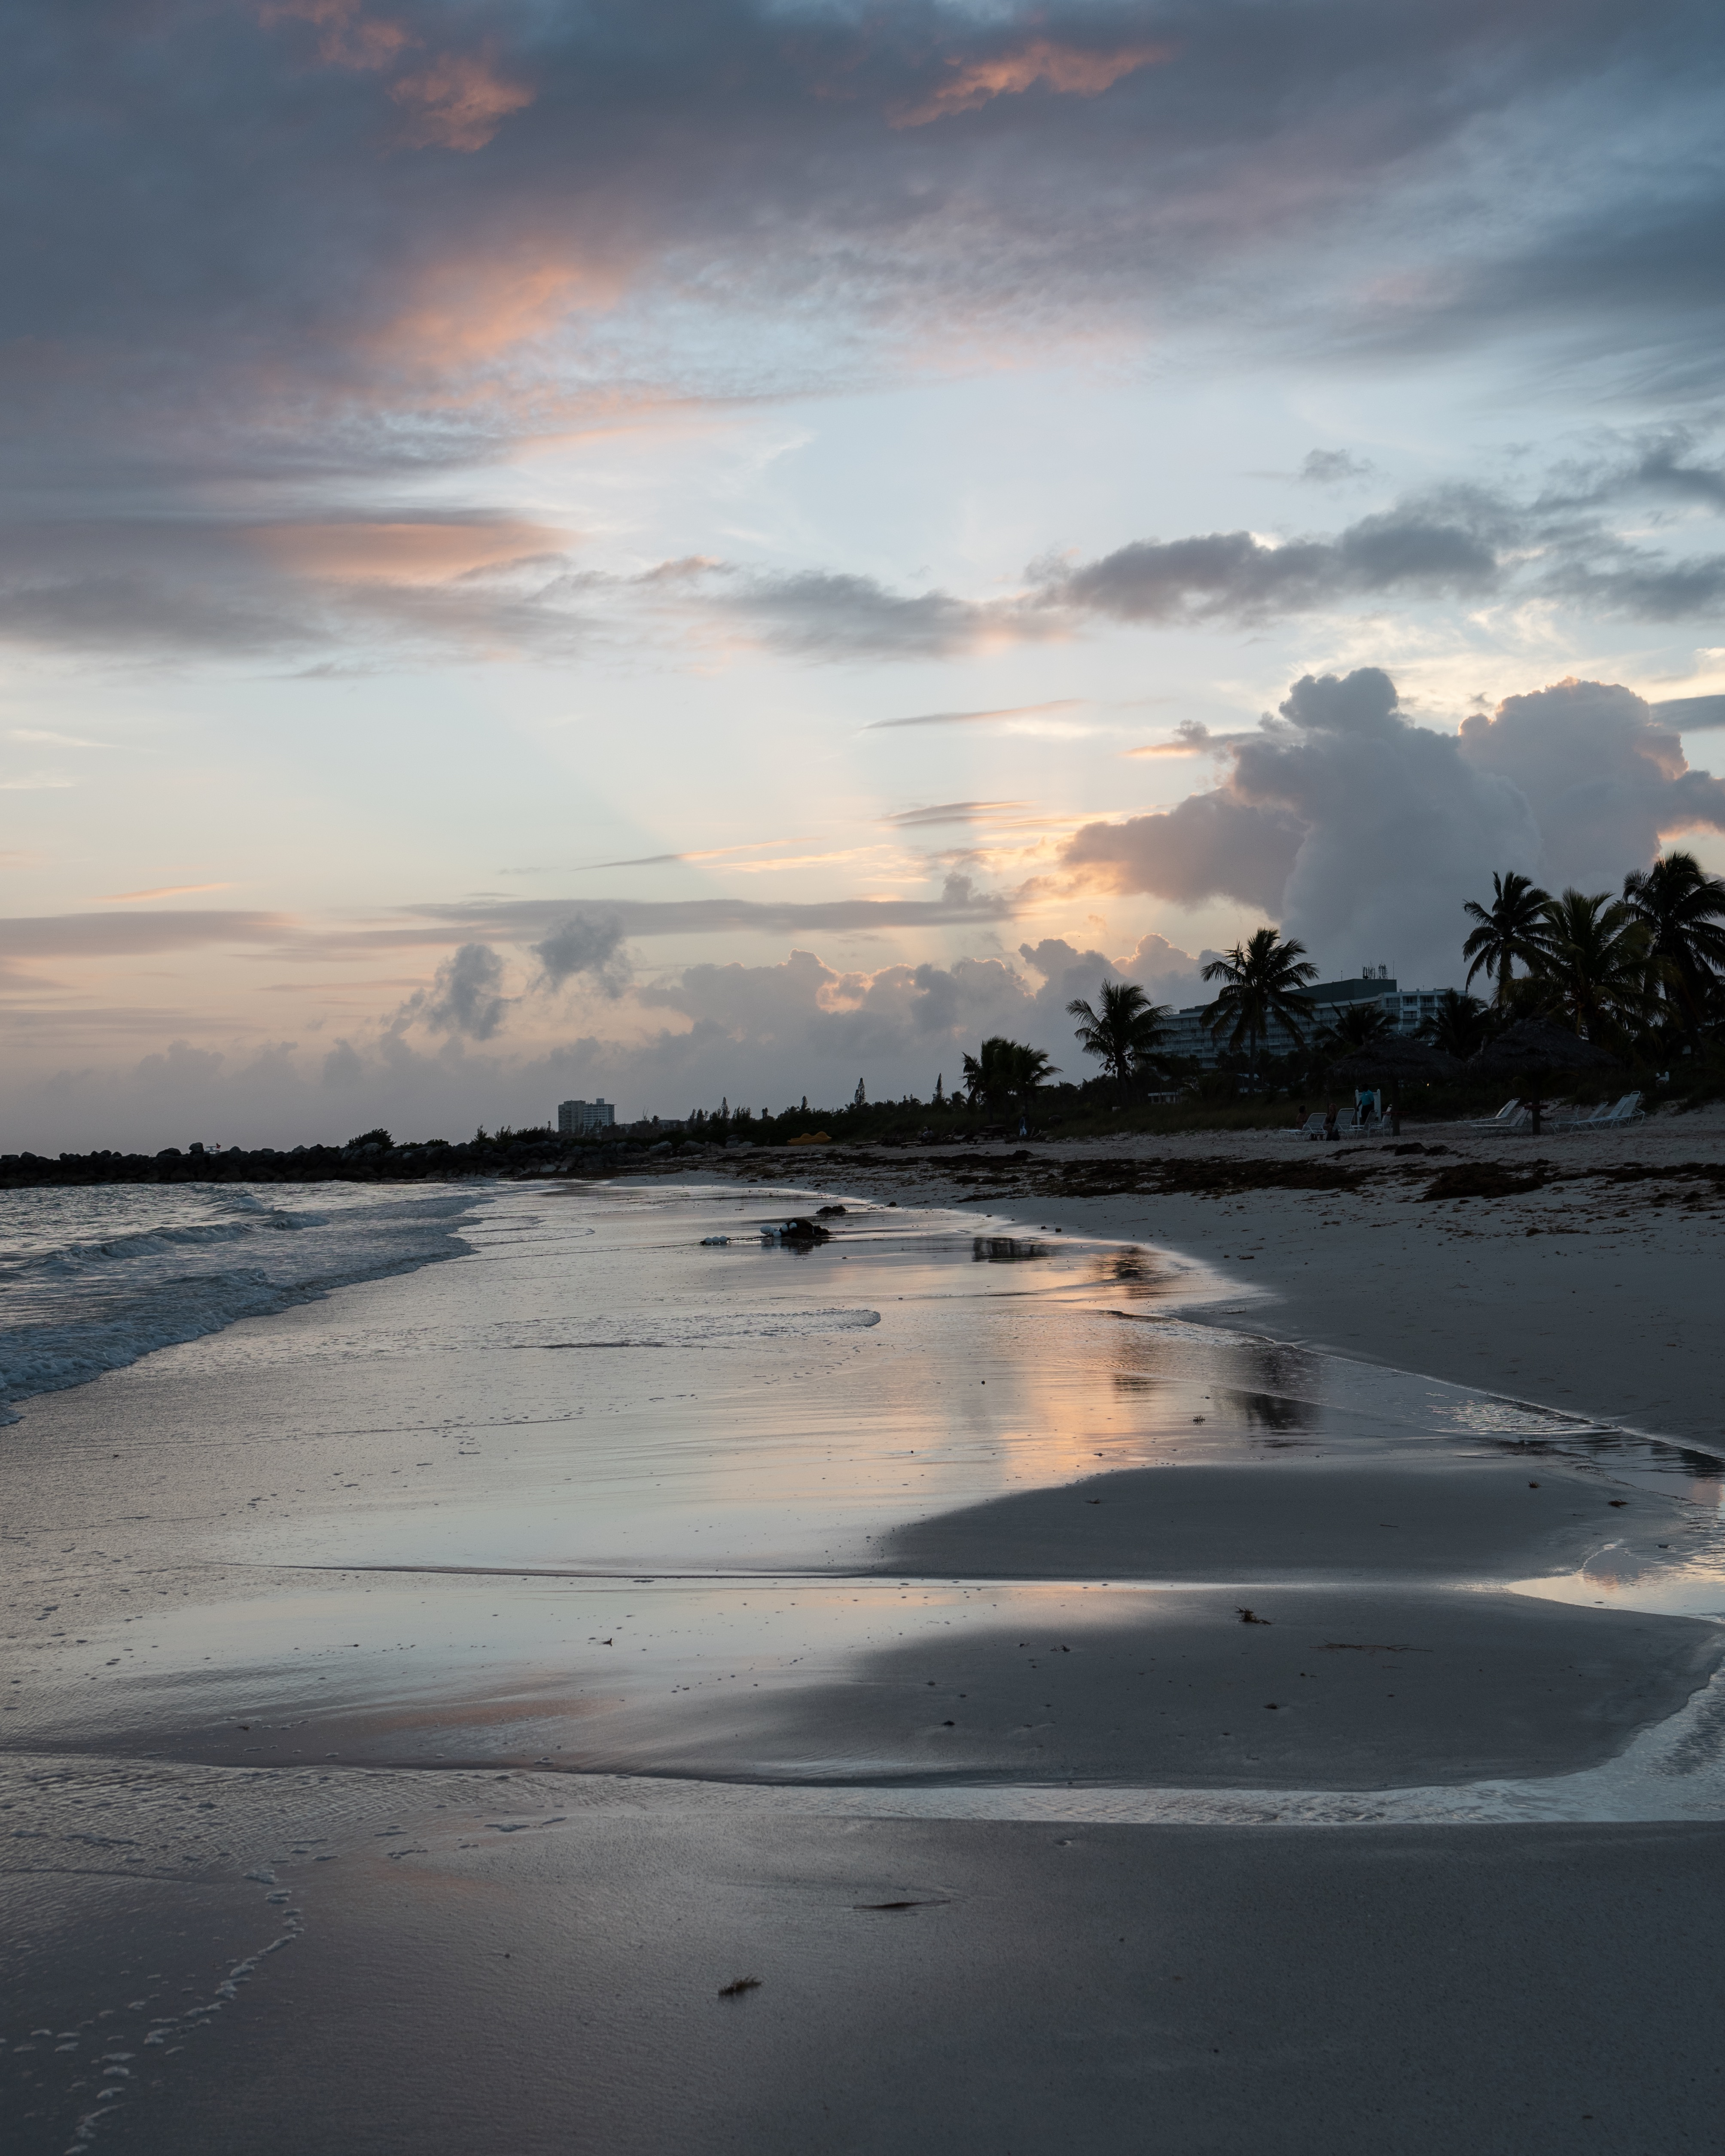 Sunset from the beach in The Bahamas